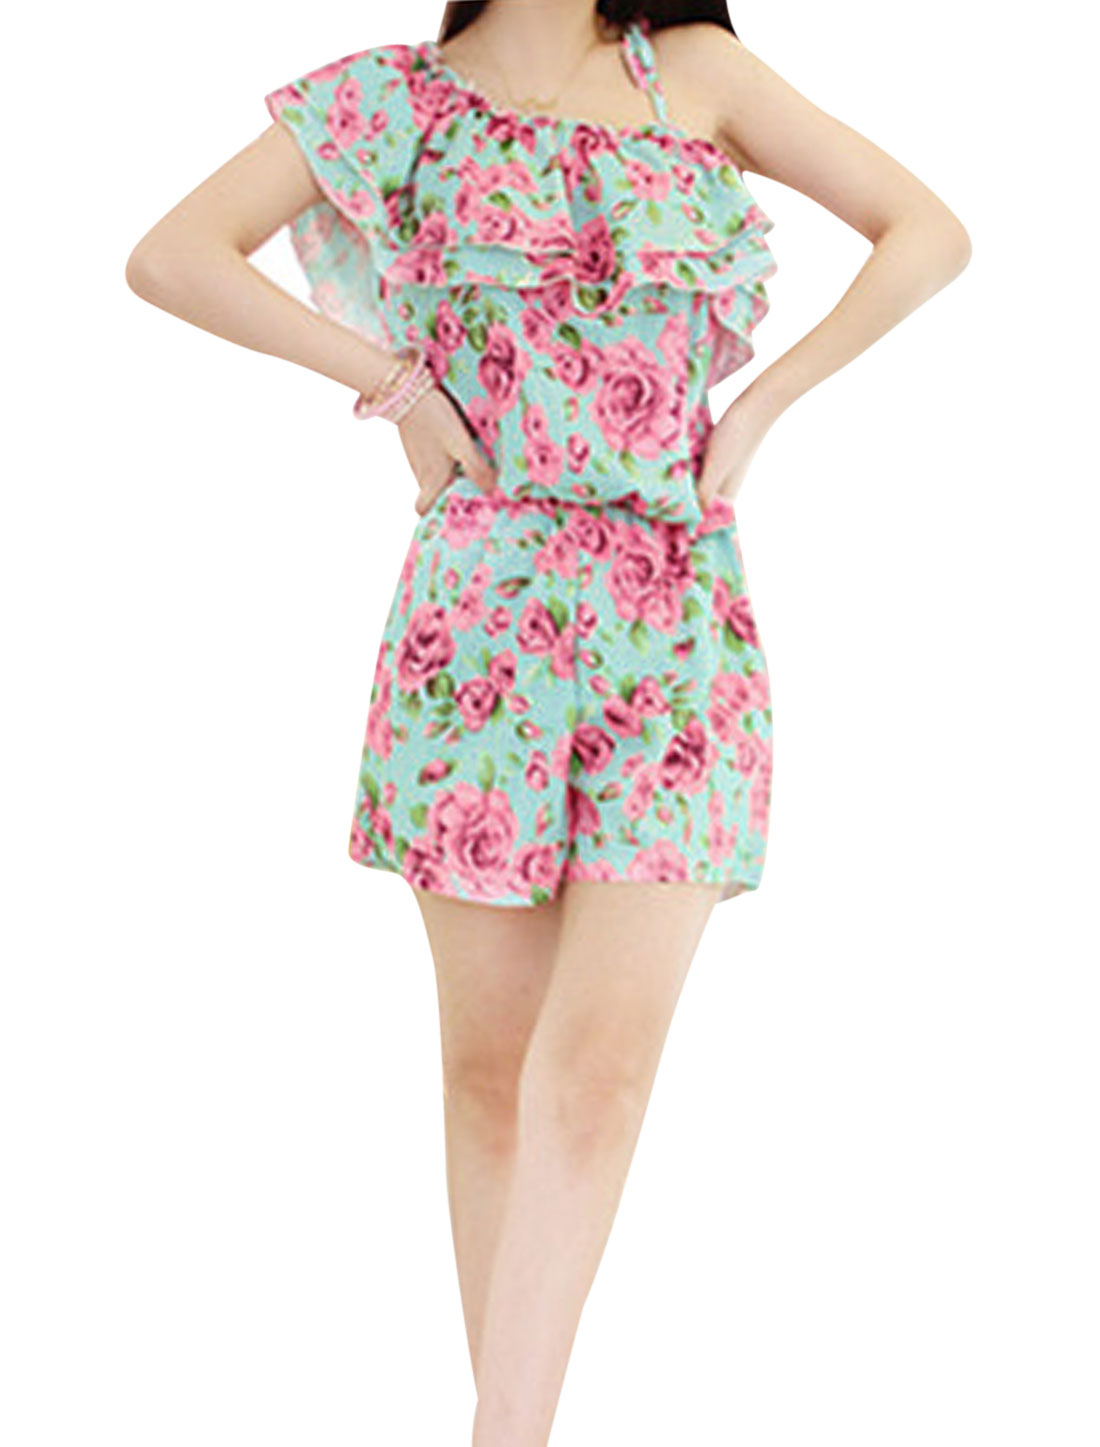 Lady One Shoulder Self-Tie Spaghetti Straps Floral Prints Romper Fuchsia XS